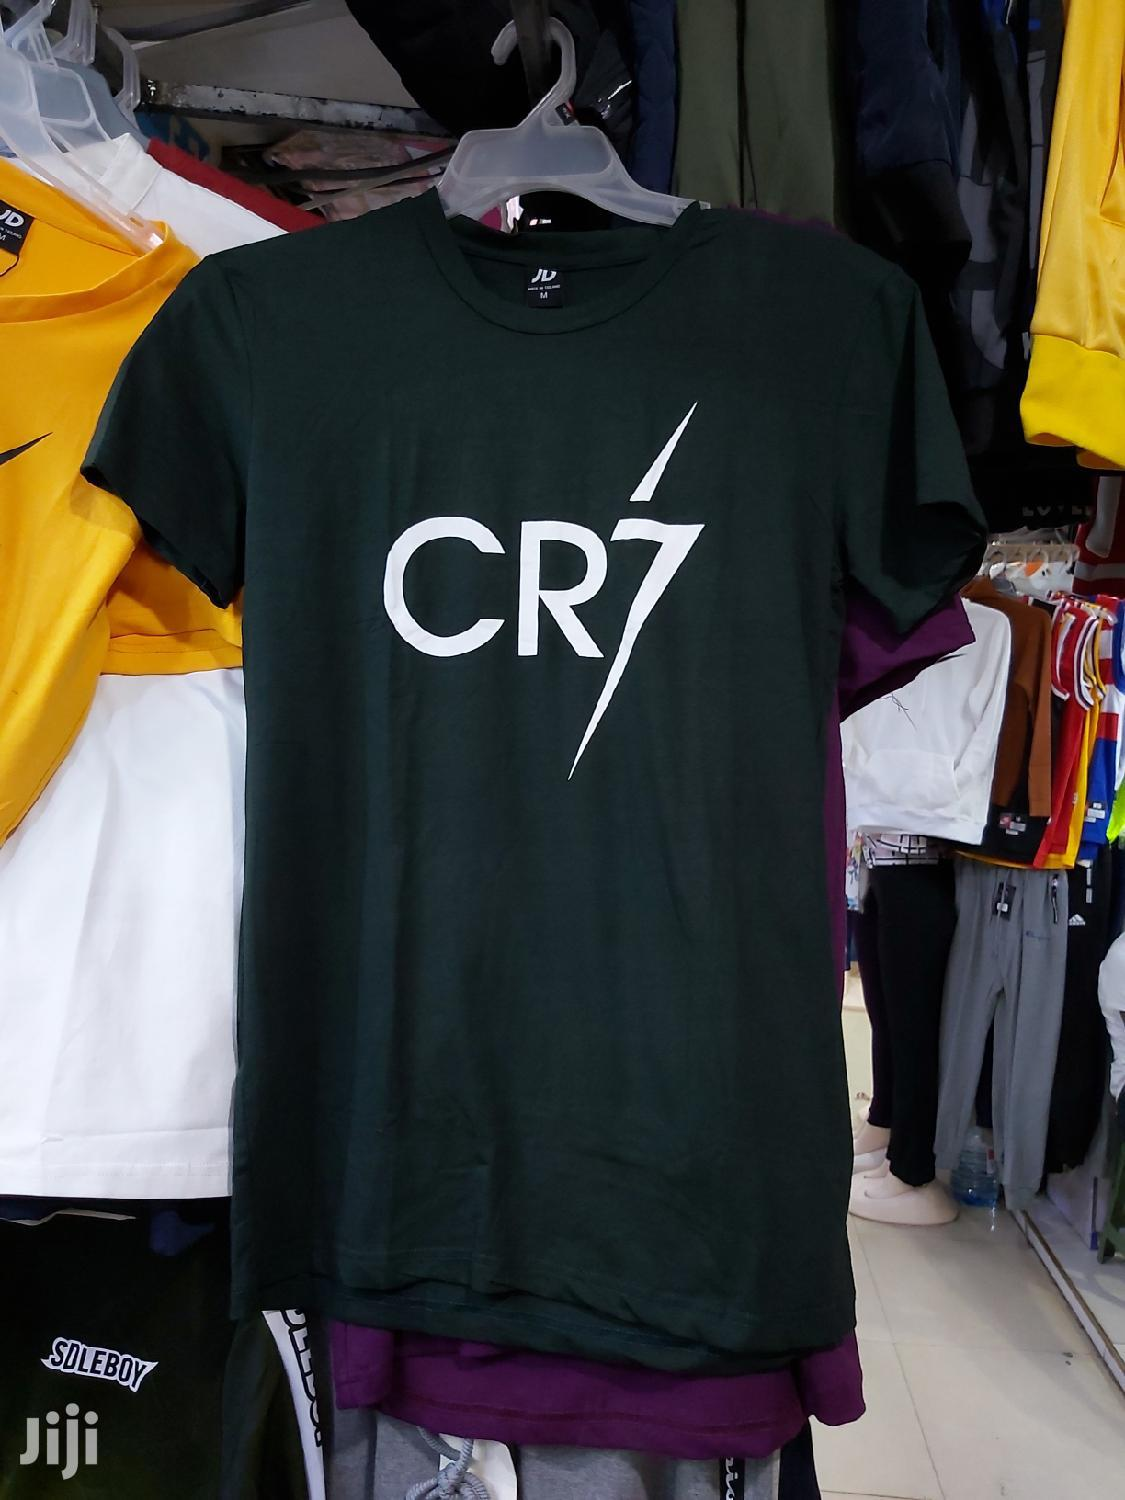 High Quality Original CR7 T-Shirts Now Available